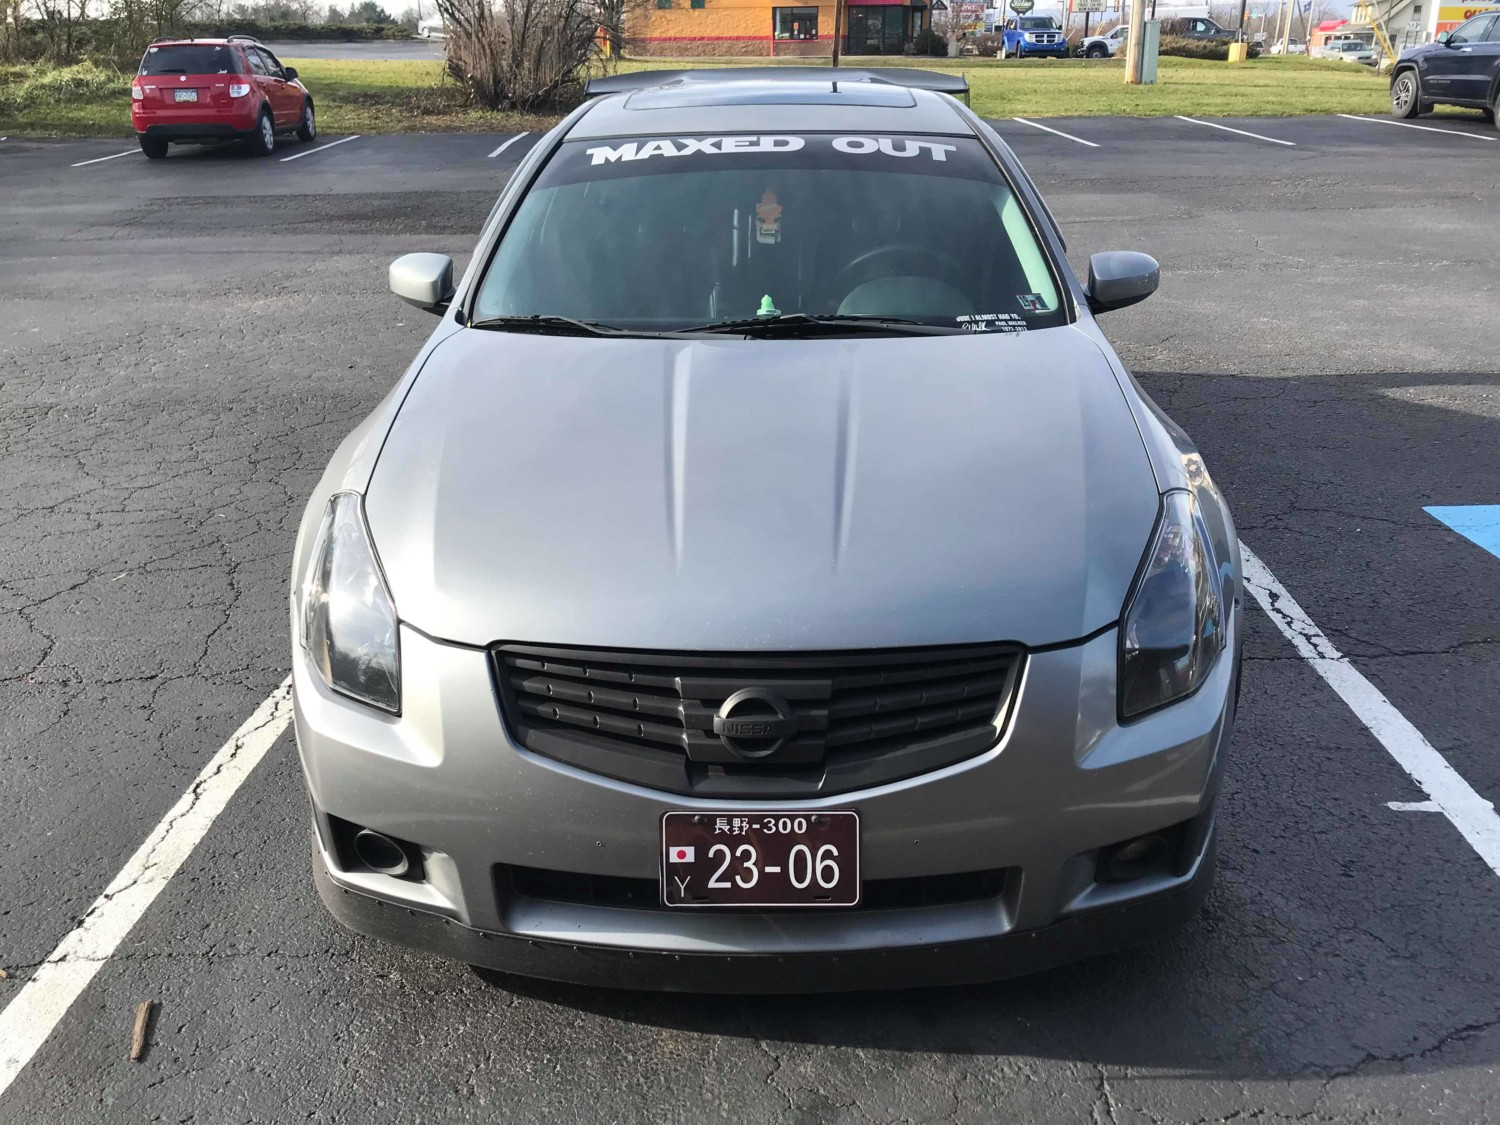 Modded 2007 6thgen Nissan Maxima With Fender Flares And